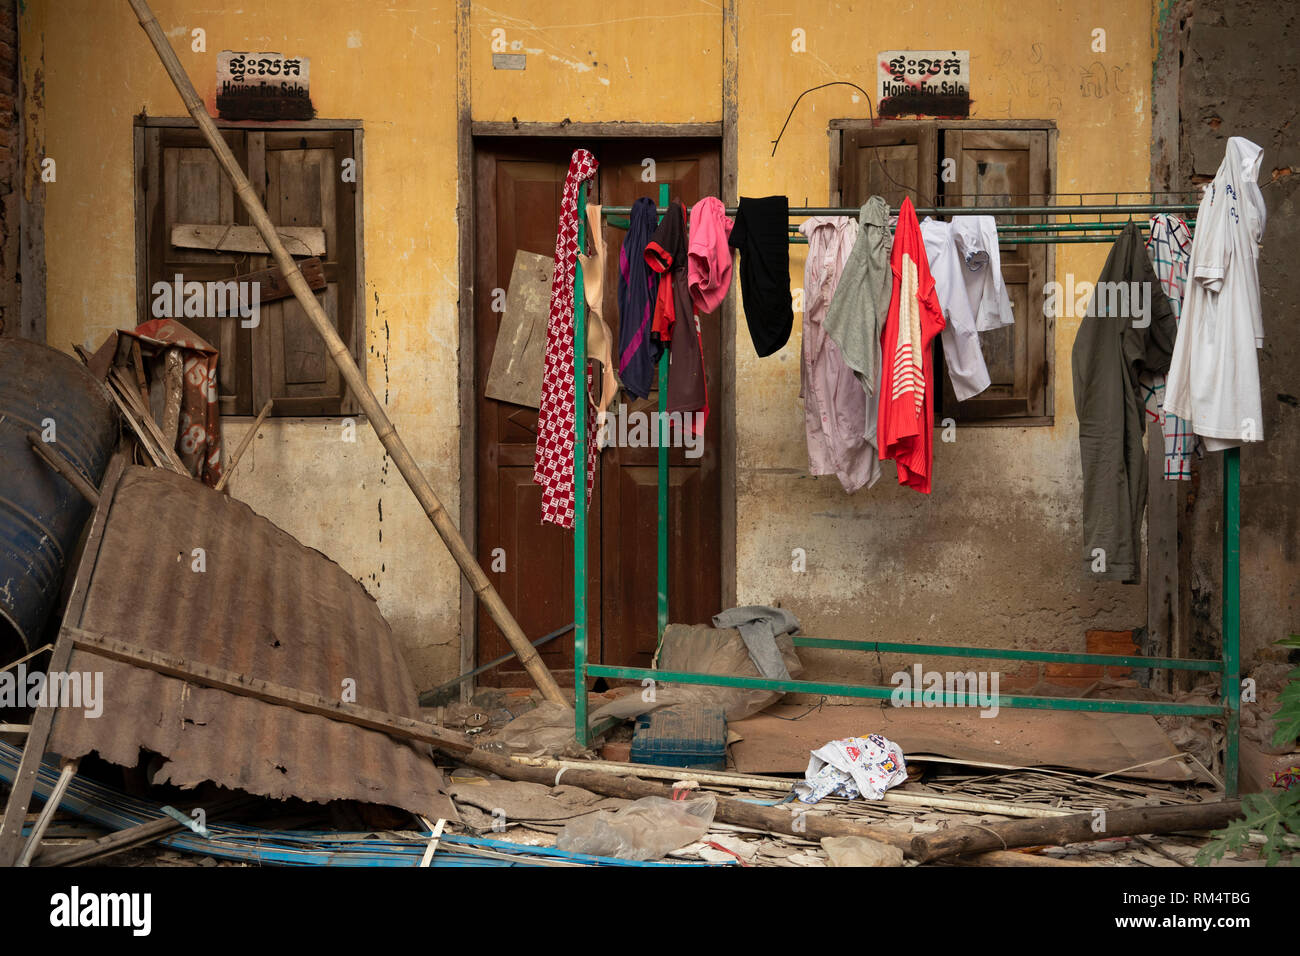 Cambodia, Kampot Province, Kampot city, Old Market area, investment opportunity, washing outside decaying old French colonial buildings - Stock Image